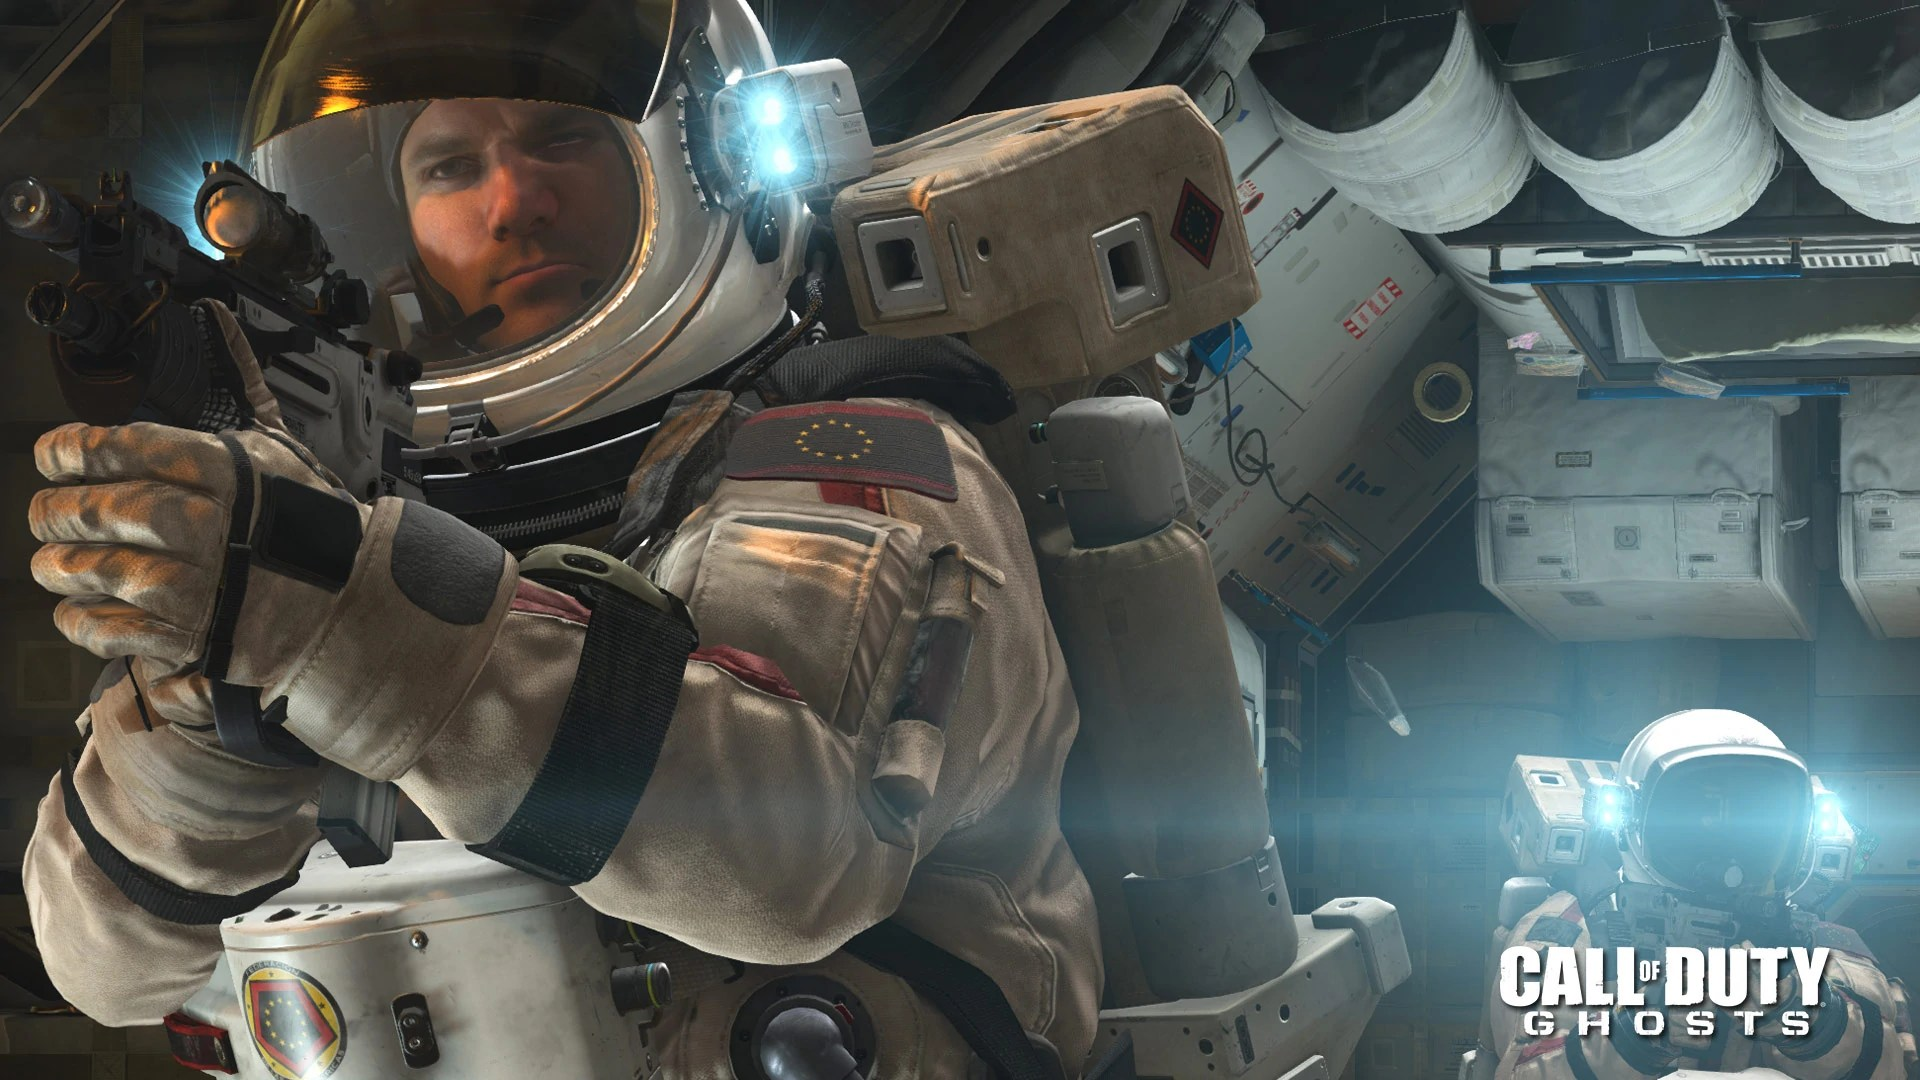 Call of Duty Ghosts Multiplayer Federation Space